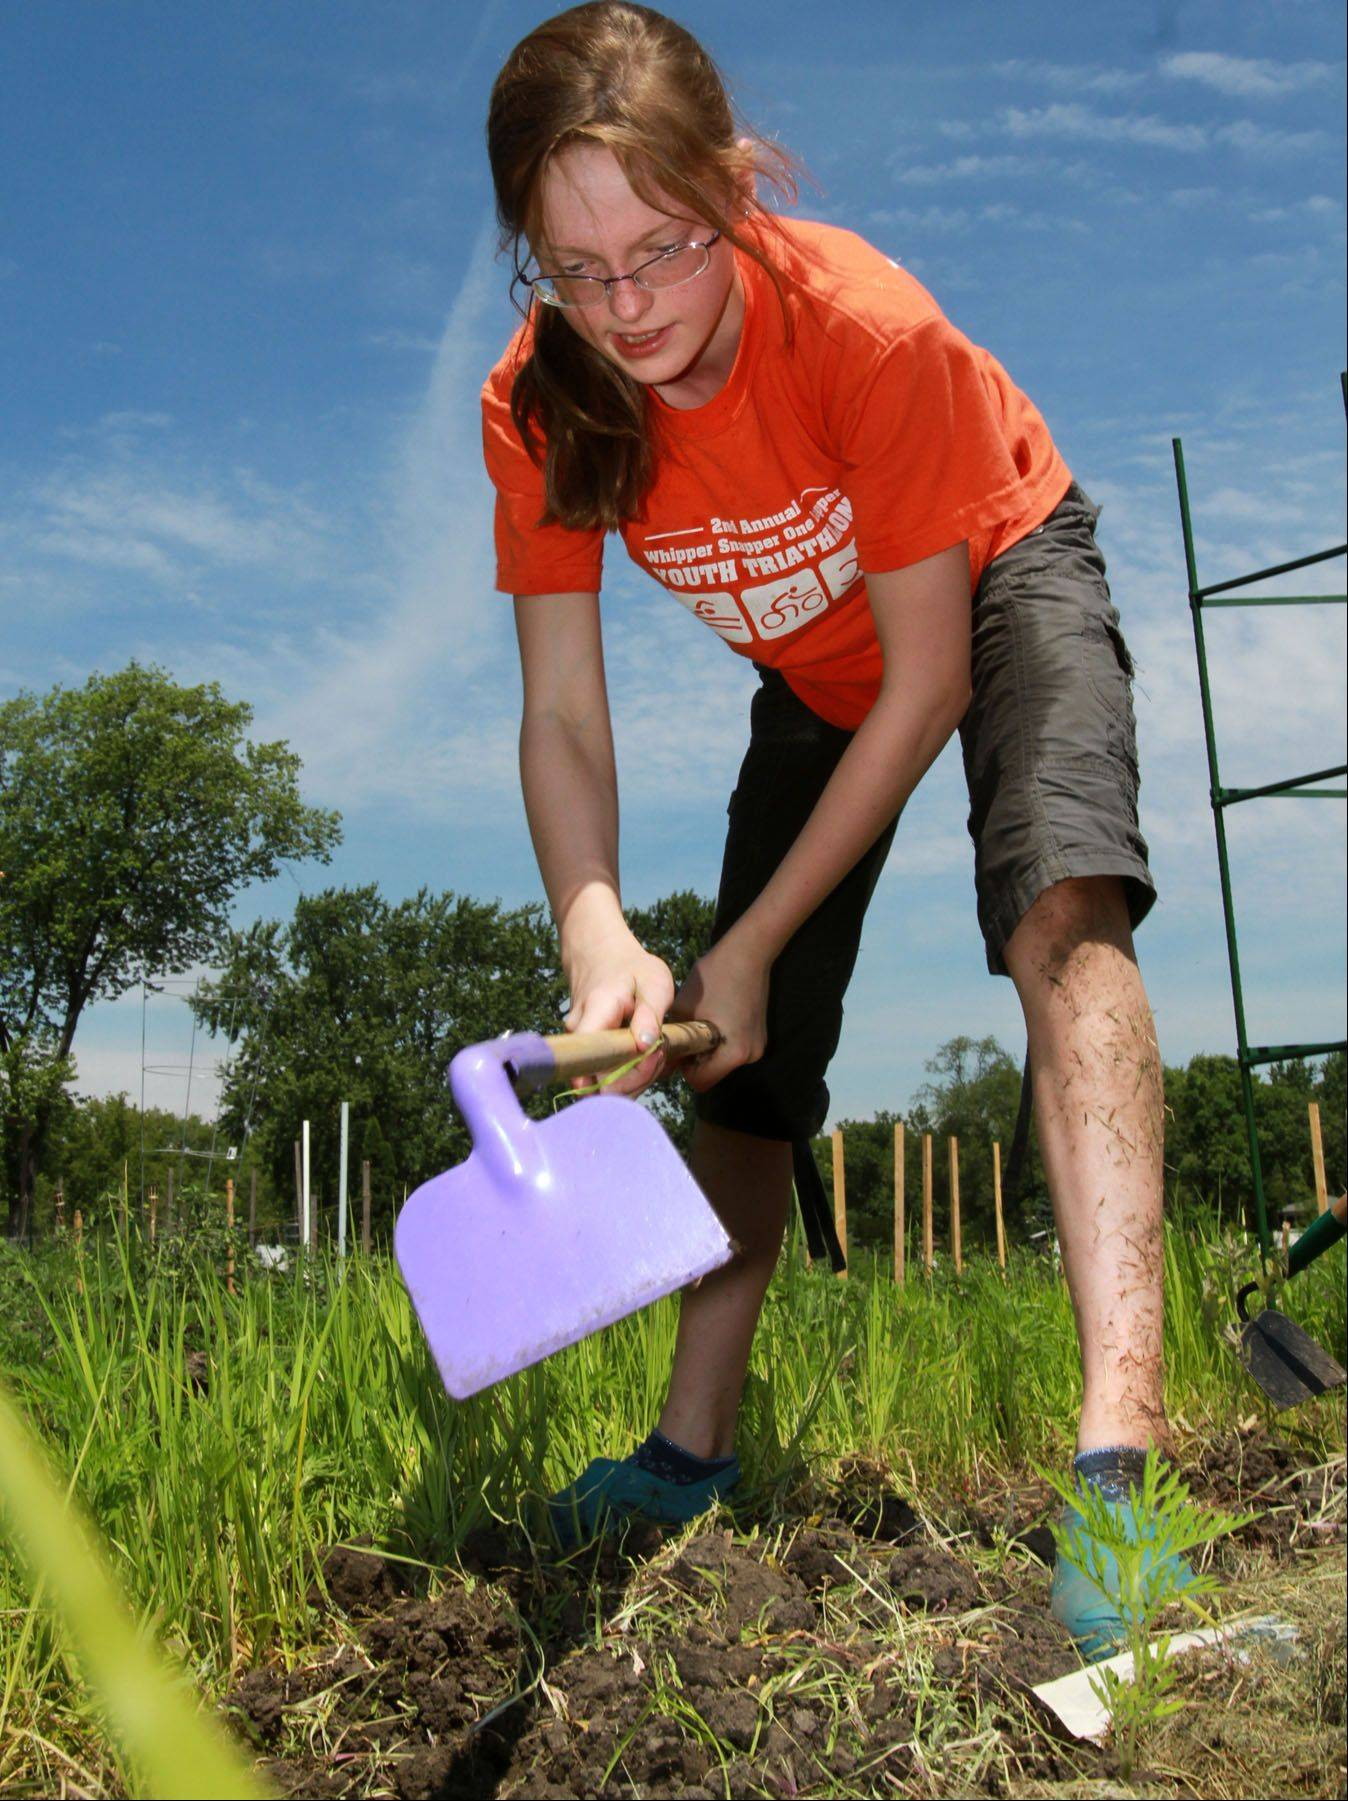 George LeClaire/gleclaire@dailyherald.comVolunteer Mili Meredith, 11, of Arlington Heights cultivates the soil at the new produce garden plot created by the Arlington Heights Neighborhood Association, in Frontier Park in Arlington Heights. The produce is donated to the Wheeling Township Food Pantry.